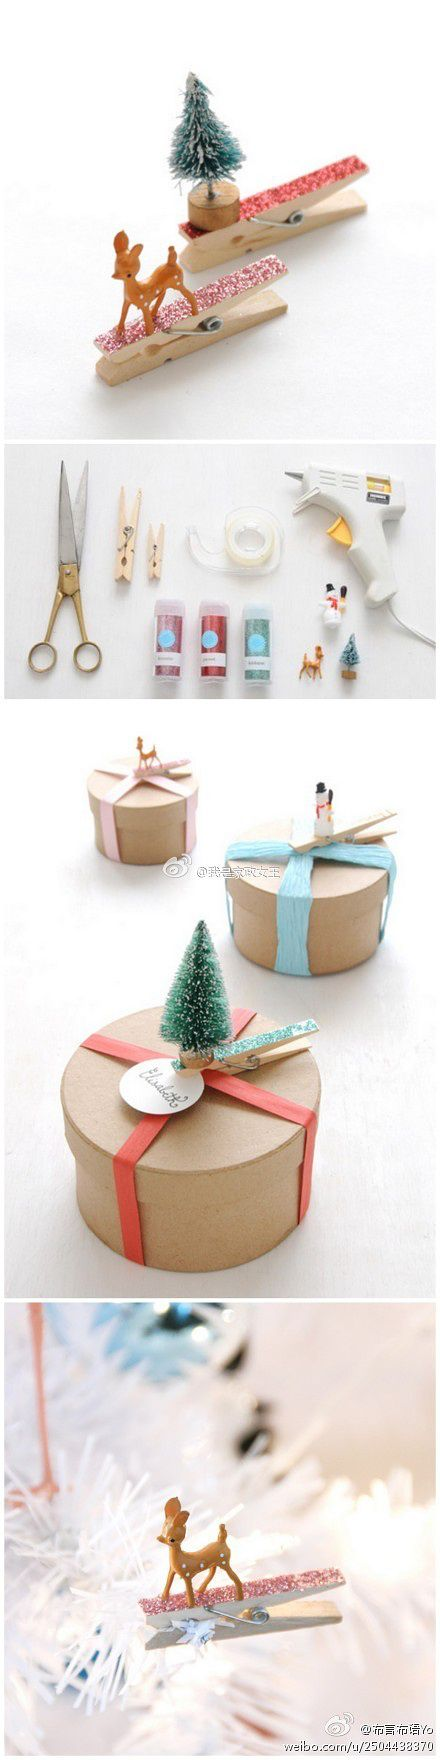 DIY Glittered Clothespin and Miniature Ornaments Gift Toppers - The BEST DIY Gift Toppers - Pretty and EASY Inexpensive Handmade Ideas for Christmas, Birthdays, Holidays and any special occasion! #diygifttoppers #DIYGiftwrapping #diygiftwrap #gifttoppers #christmasgifttoppers #diychristmasgifttoppers #birthdaygifttoppers #diychristmasbows